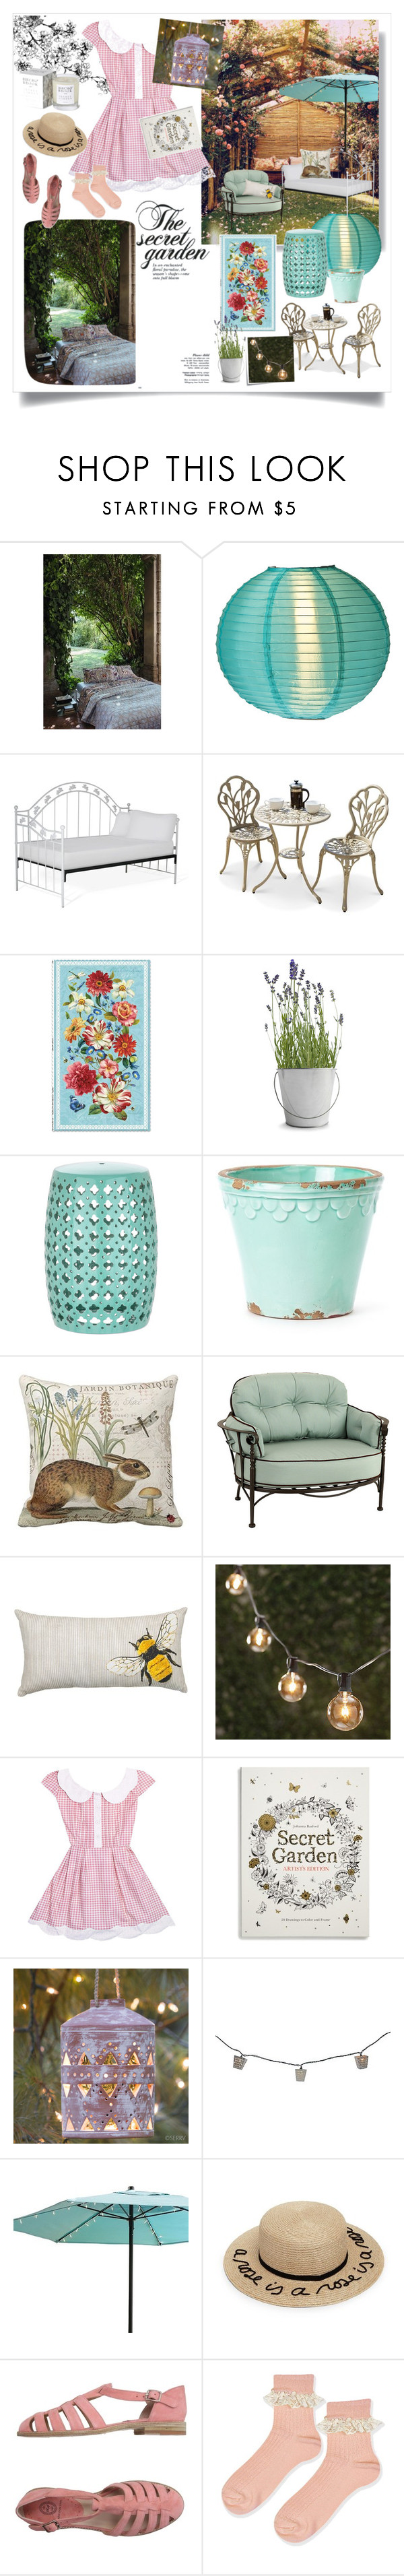 """The Secret Garden"" by helena-myers on Polyvore featuring interior, interiors, interior design, Casa, home decor, interior decorating, Zucchi Collection, Cultural Intrigue, Potting Shed Creations e Ballard Designs"